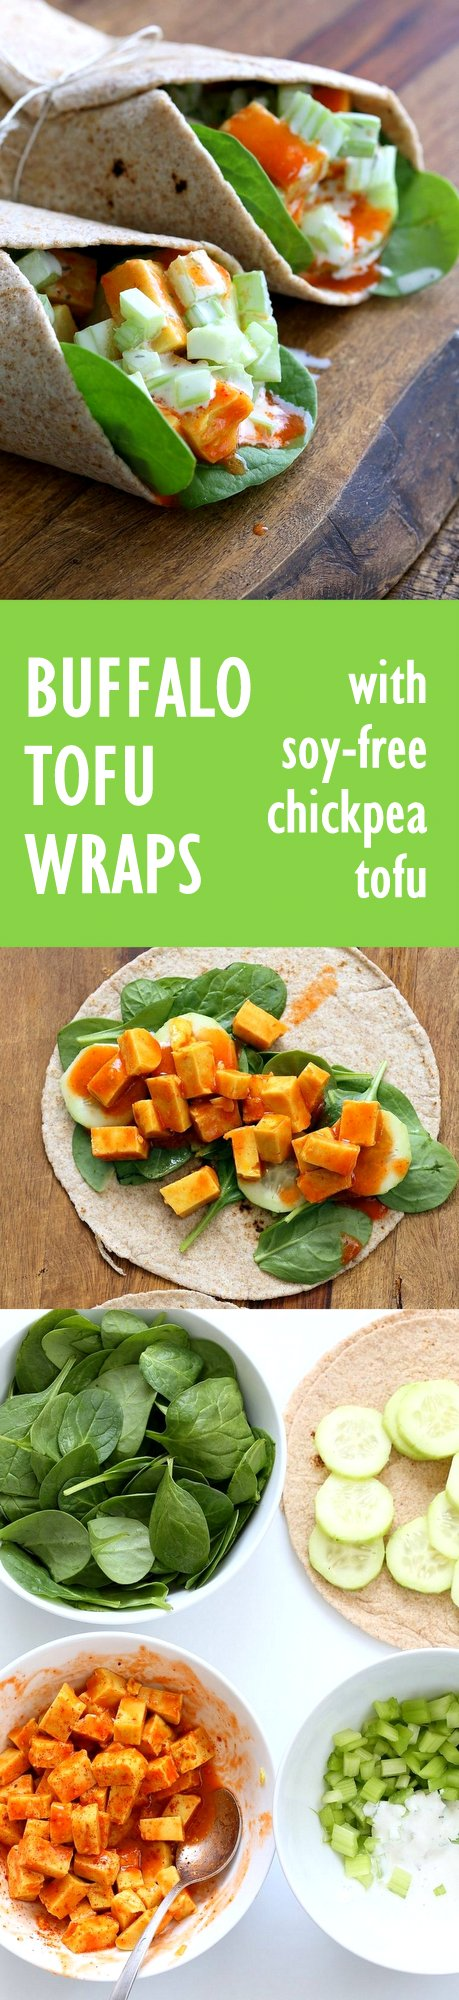 Buffalo Tofu wrap with Chickpea Tofu. Soy-free Chickpea flour Tofu tossed in buffalo hot sauce, layered with celery, spinach, cucumbers and vegan ranch. #vegan #glutenfree #soyfree #Easy weekday meal #Recipe | VeganRicha.com